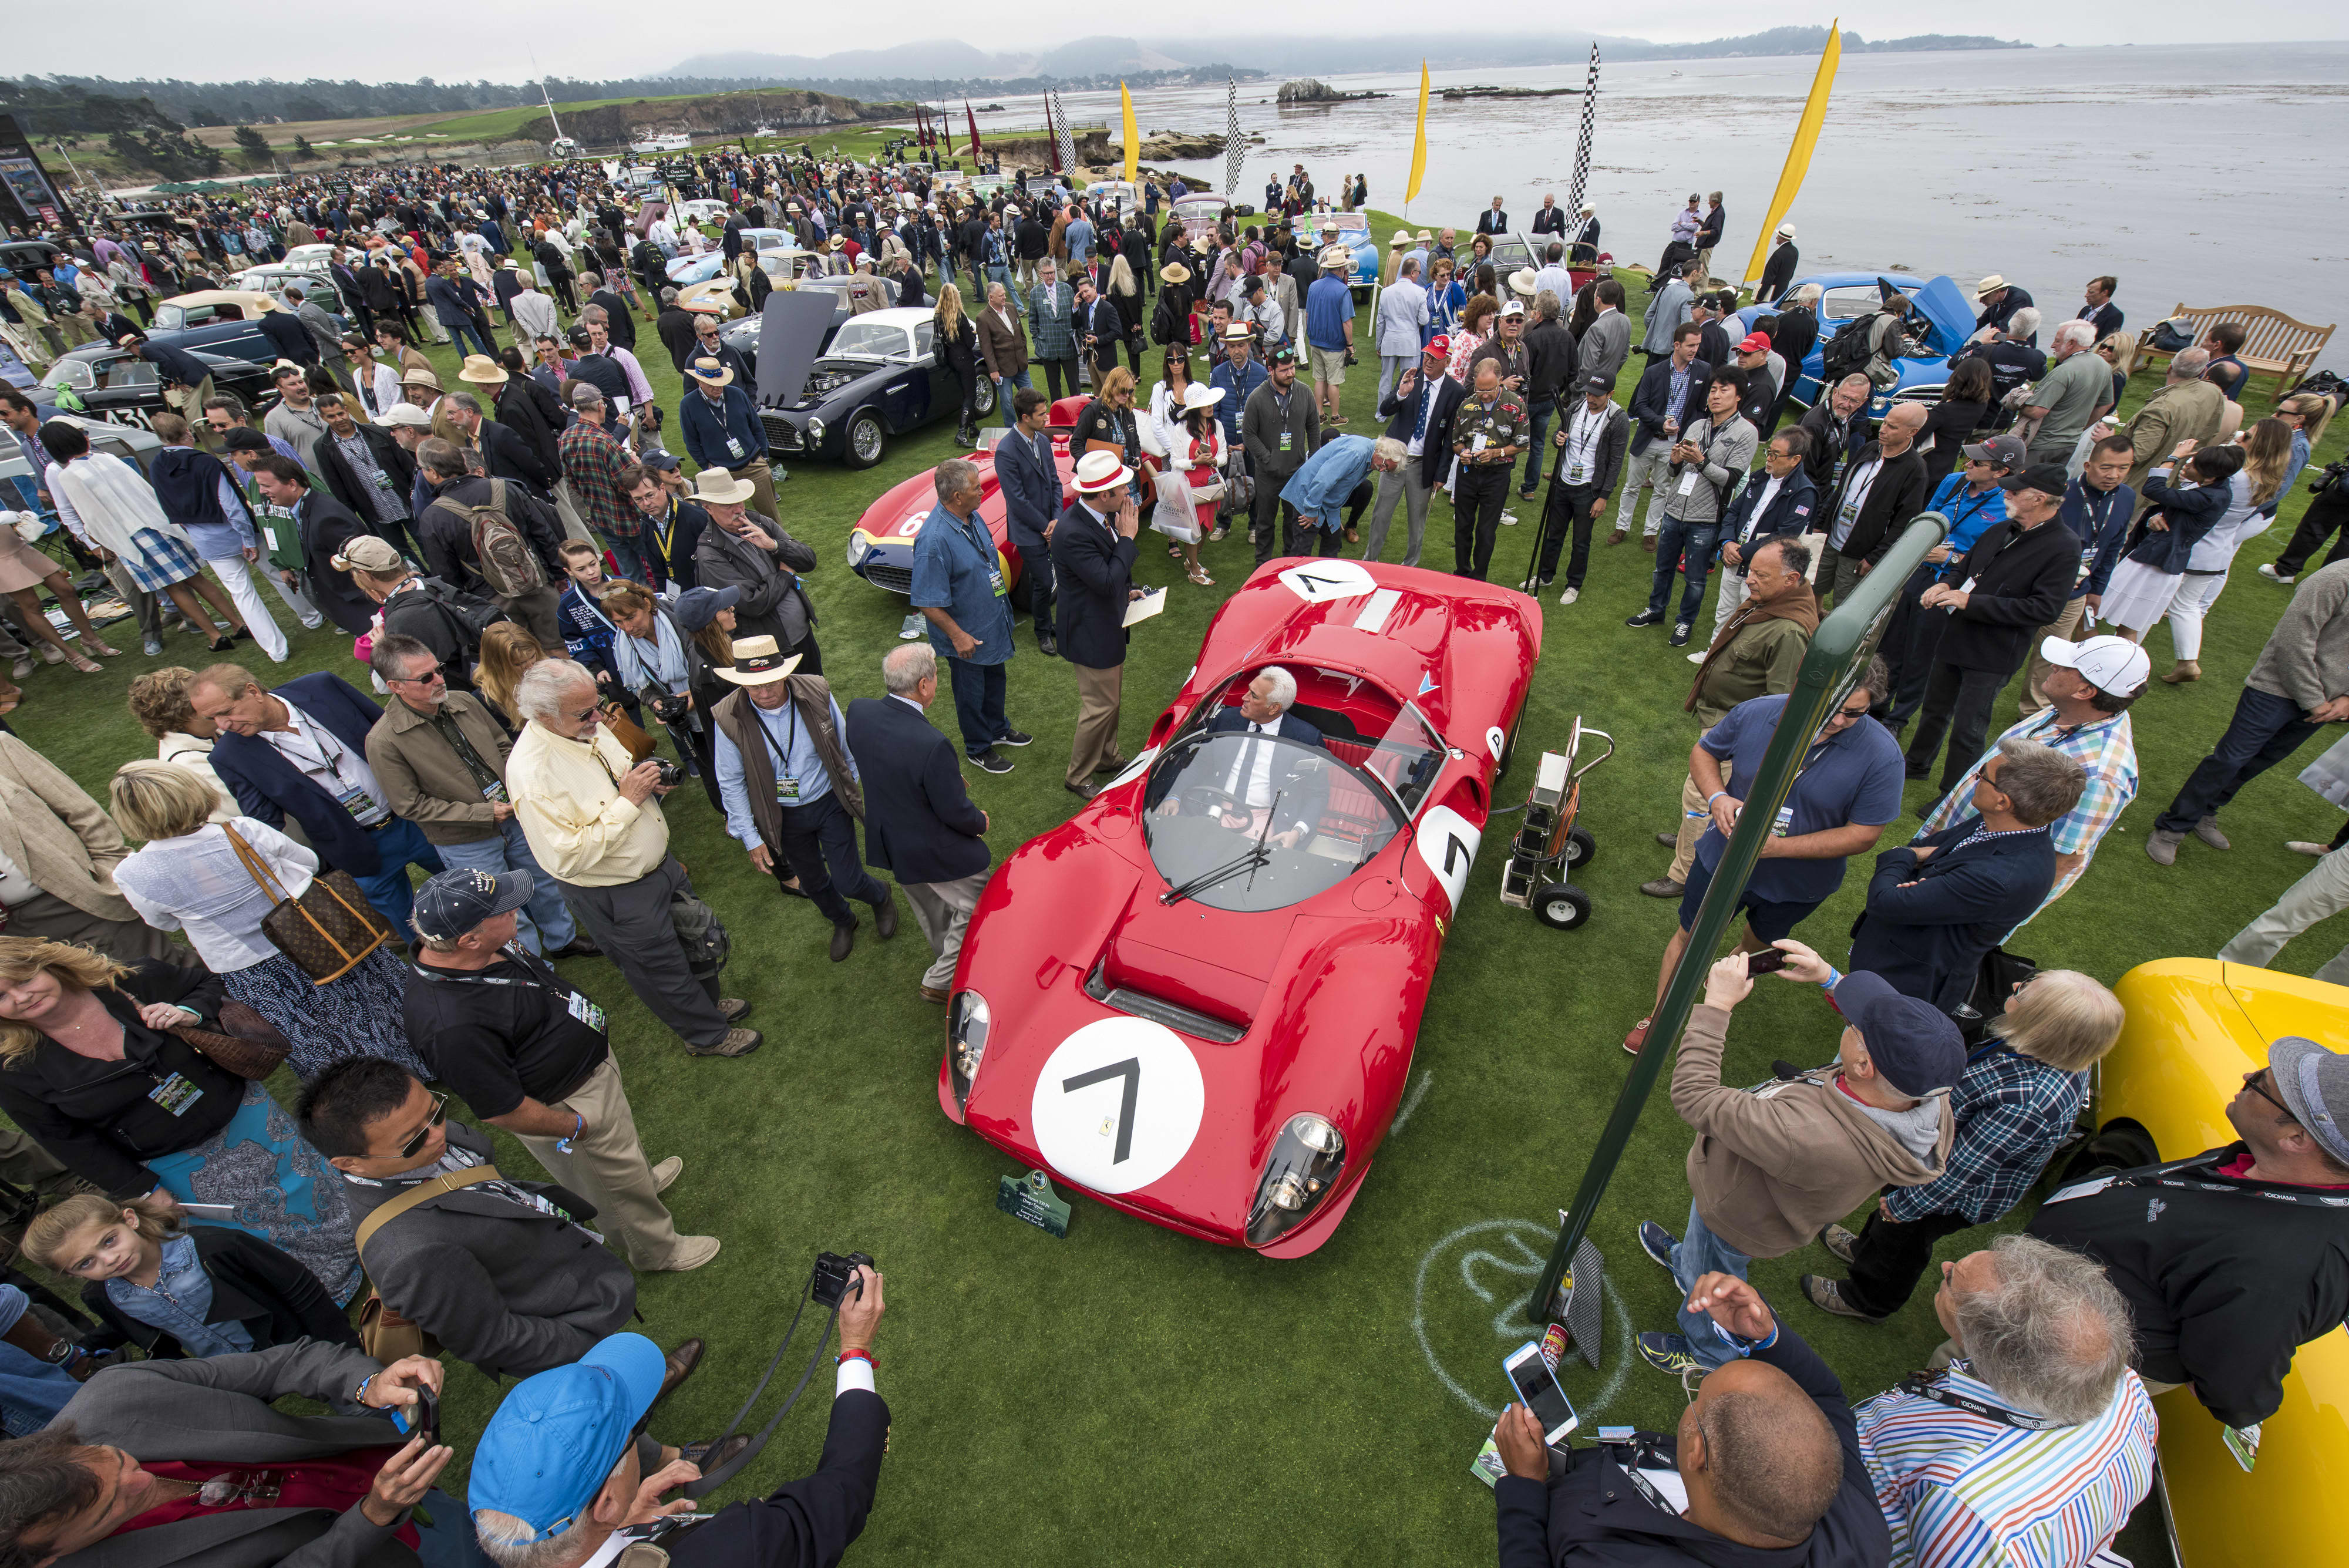 Pebble Beach car week isn't for budget travelers as prices get jacked for event tickets, hotel rooms, even gasoline